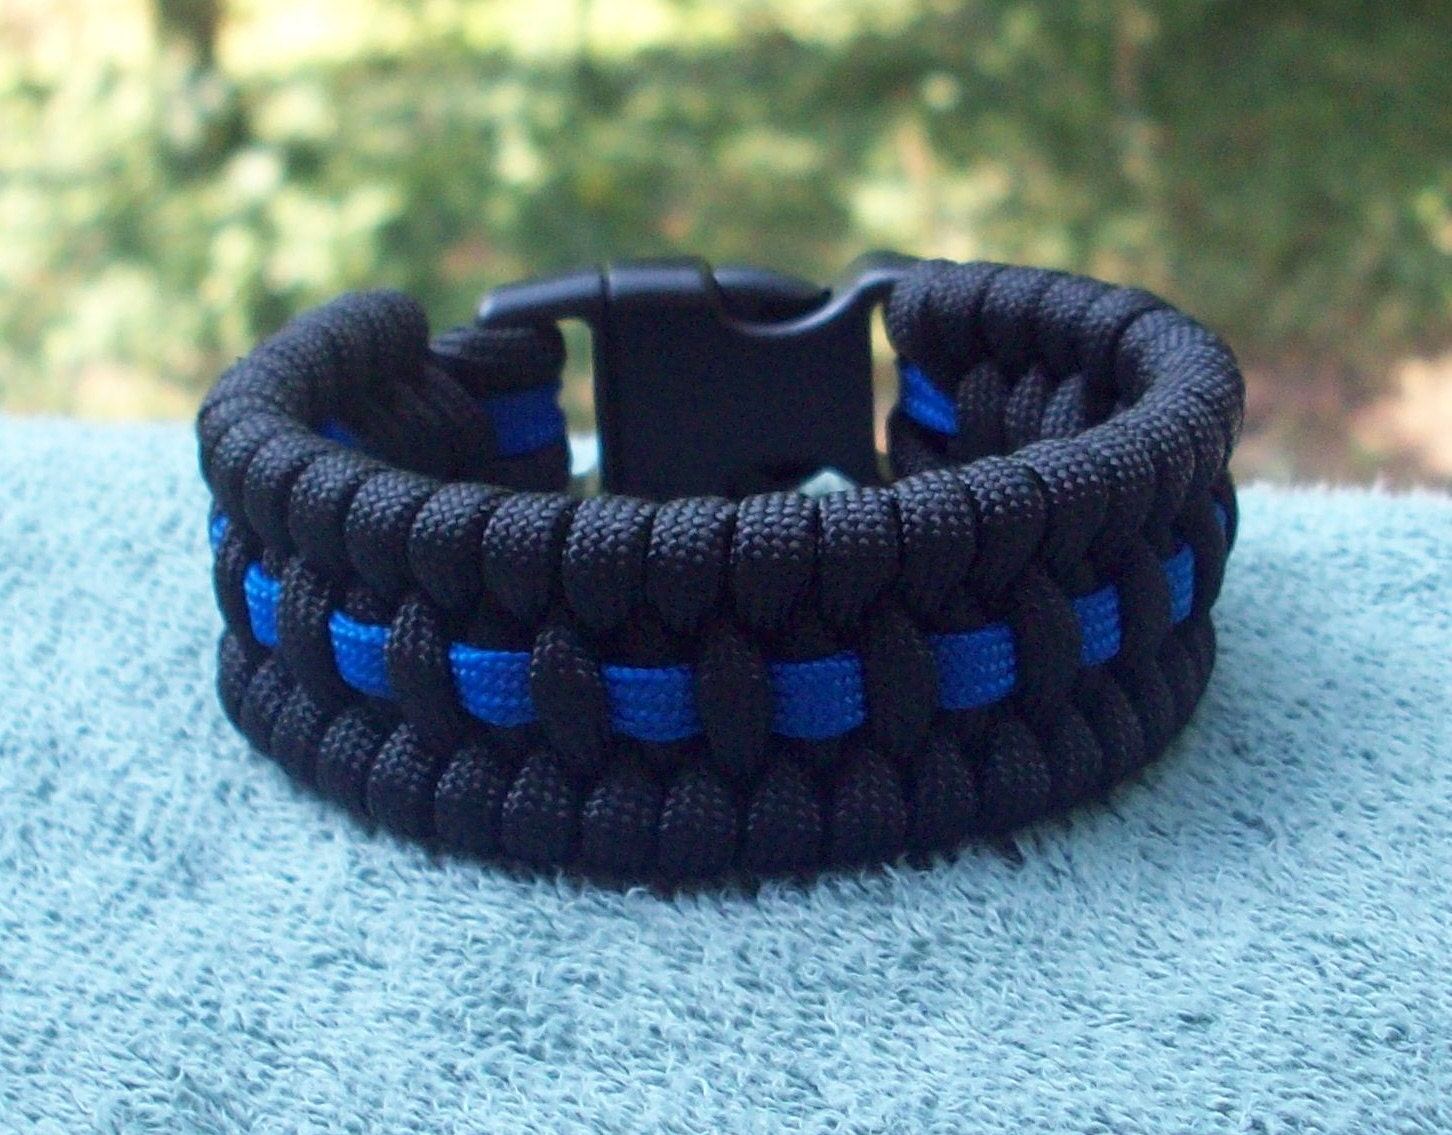 blue line bracelet thin flex the ring black wb products pack lives matter wristband with bll in middle